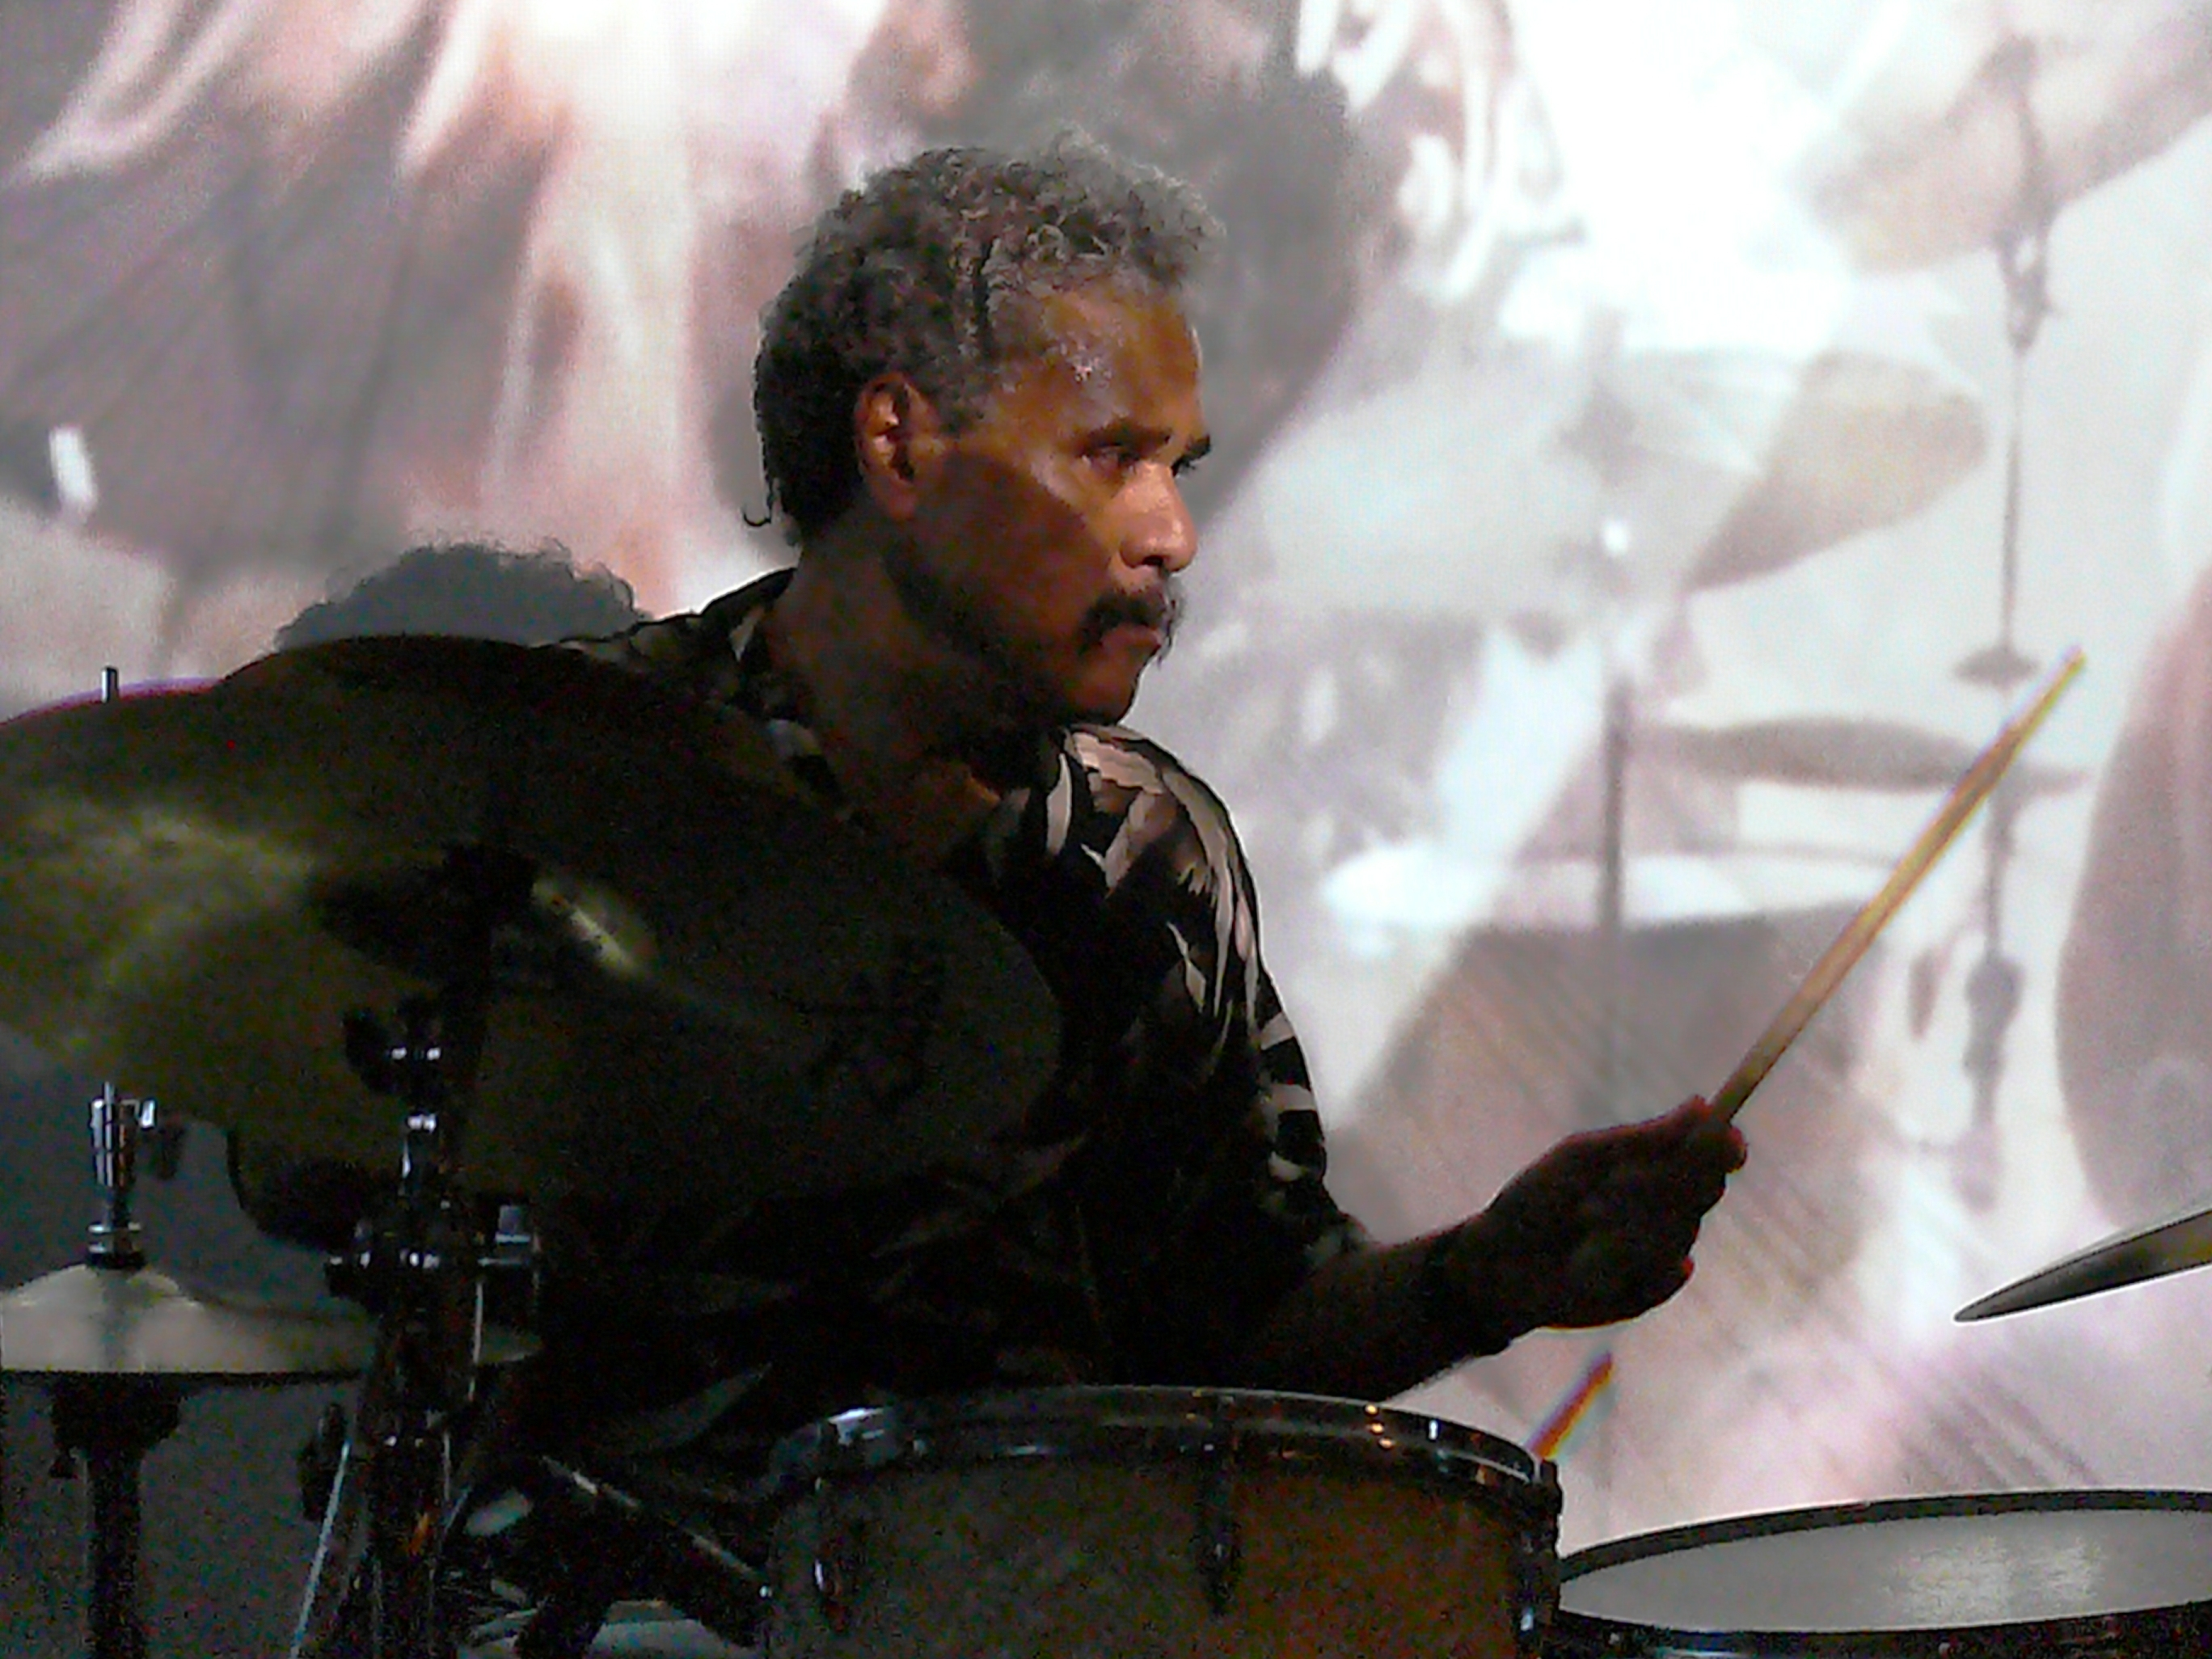 Anthony brown at cafe oto as part of the london jazz festival in november 2013